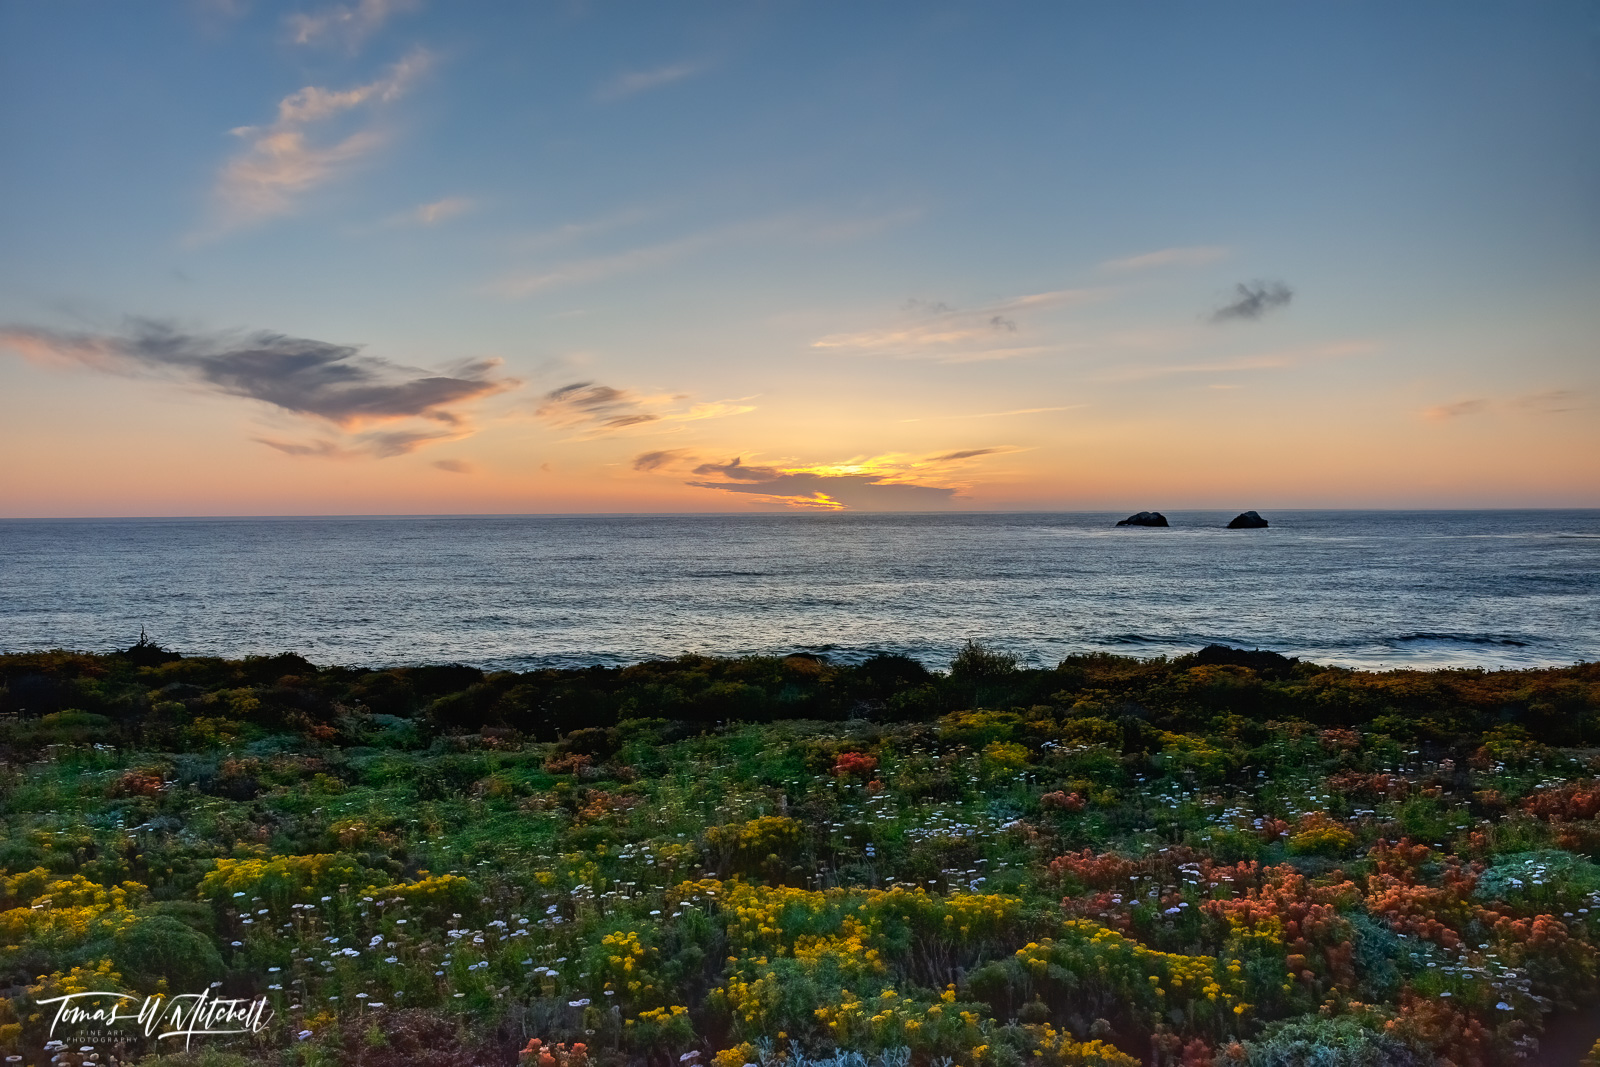 limited edition, fine art, prints, photograph, sunset, soberanes point, garrapata state park, california, coastline, wildflowers, ocean, photo